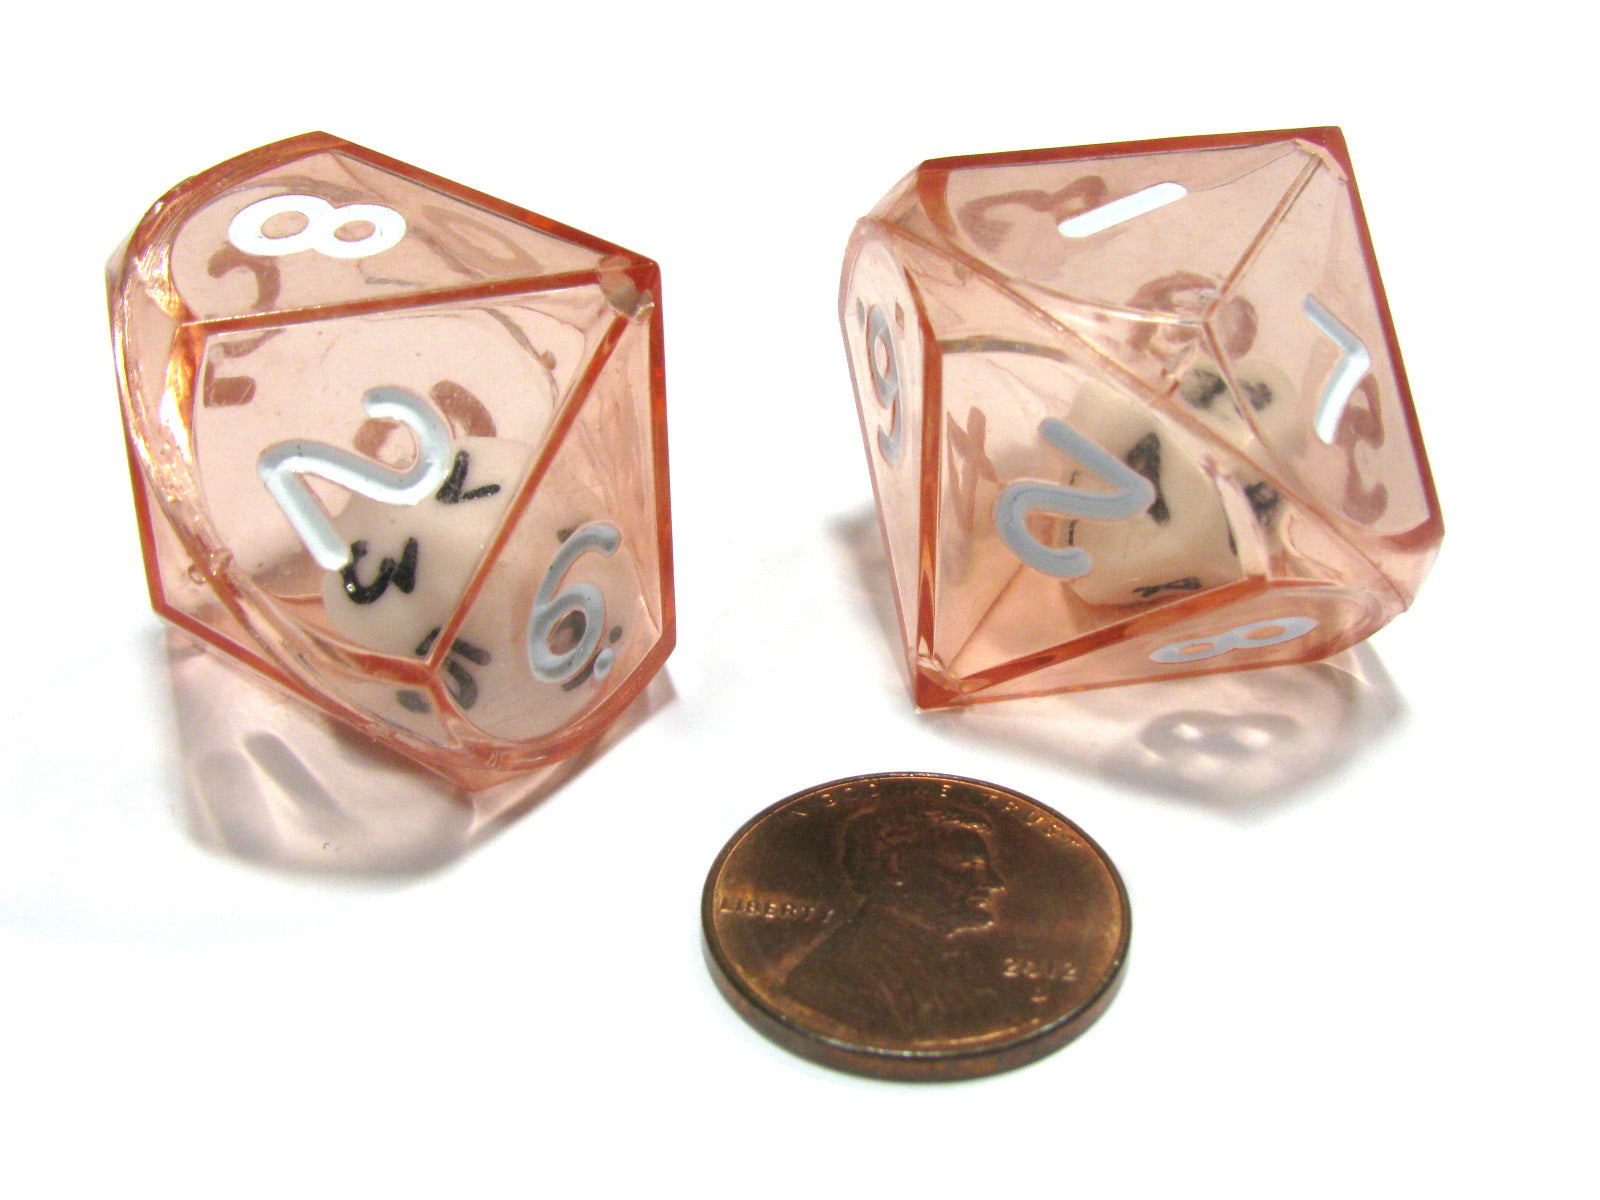 Set of 2 D10 26mm Double Dice, 2-In-1 Dice - White Inside Translucent Red Die